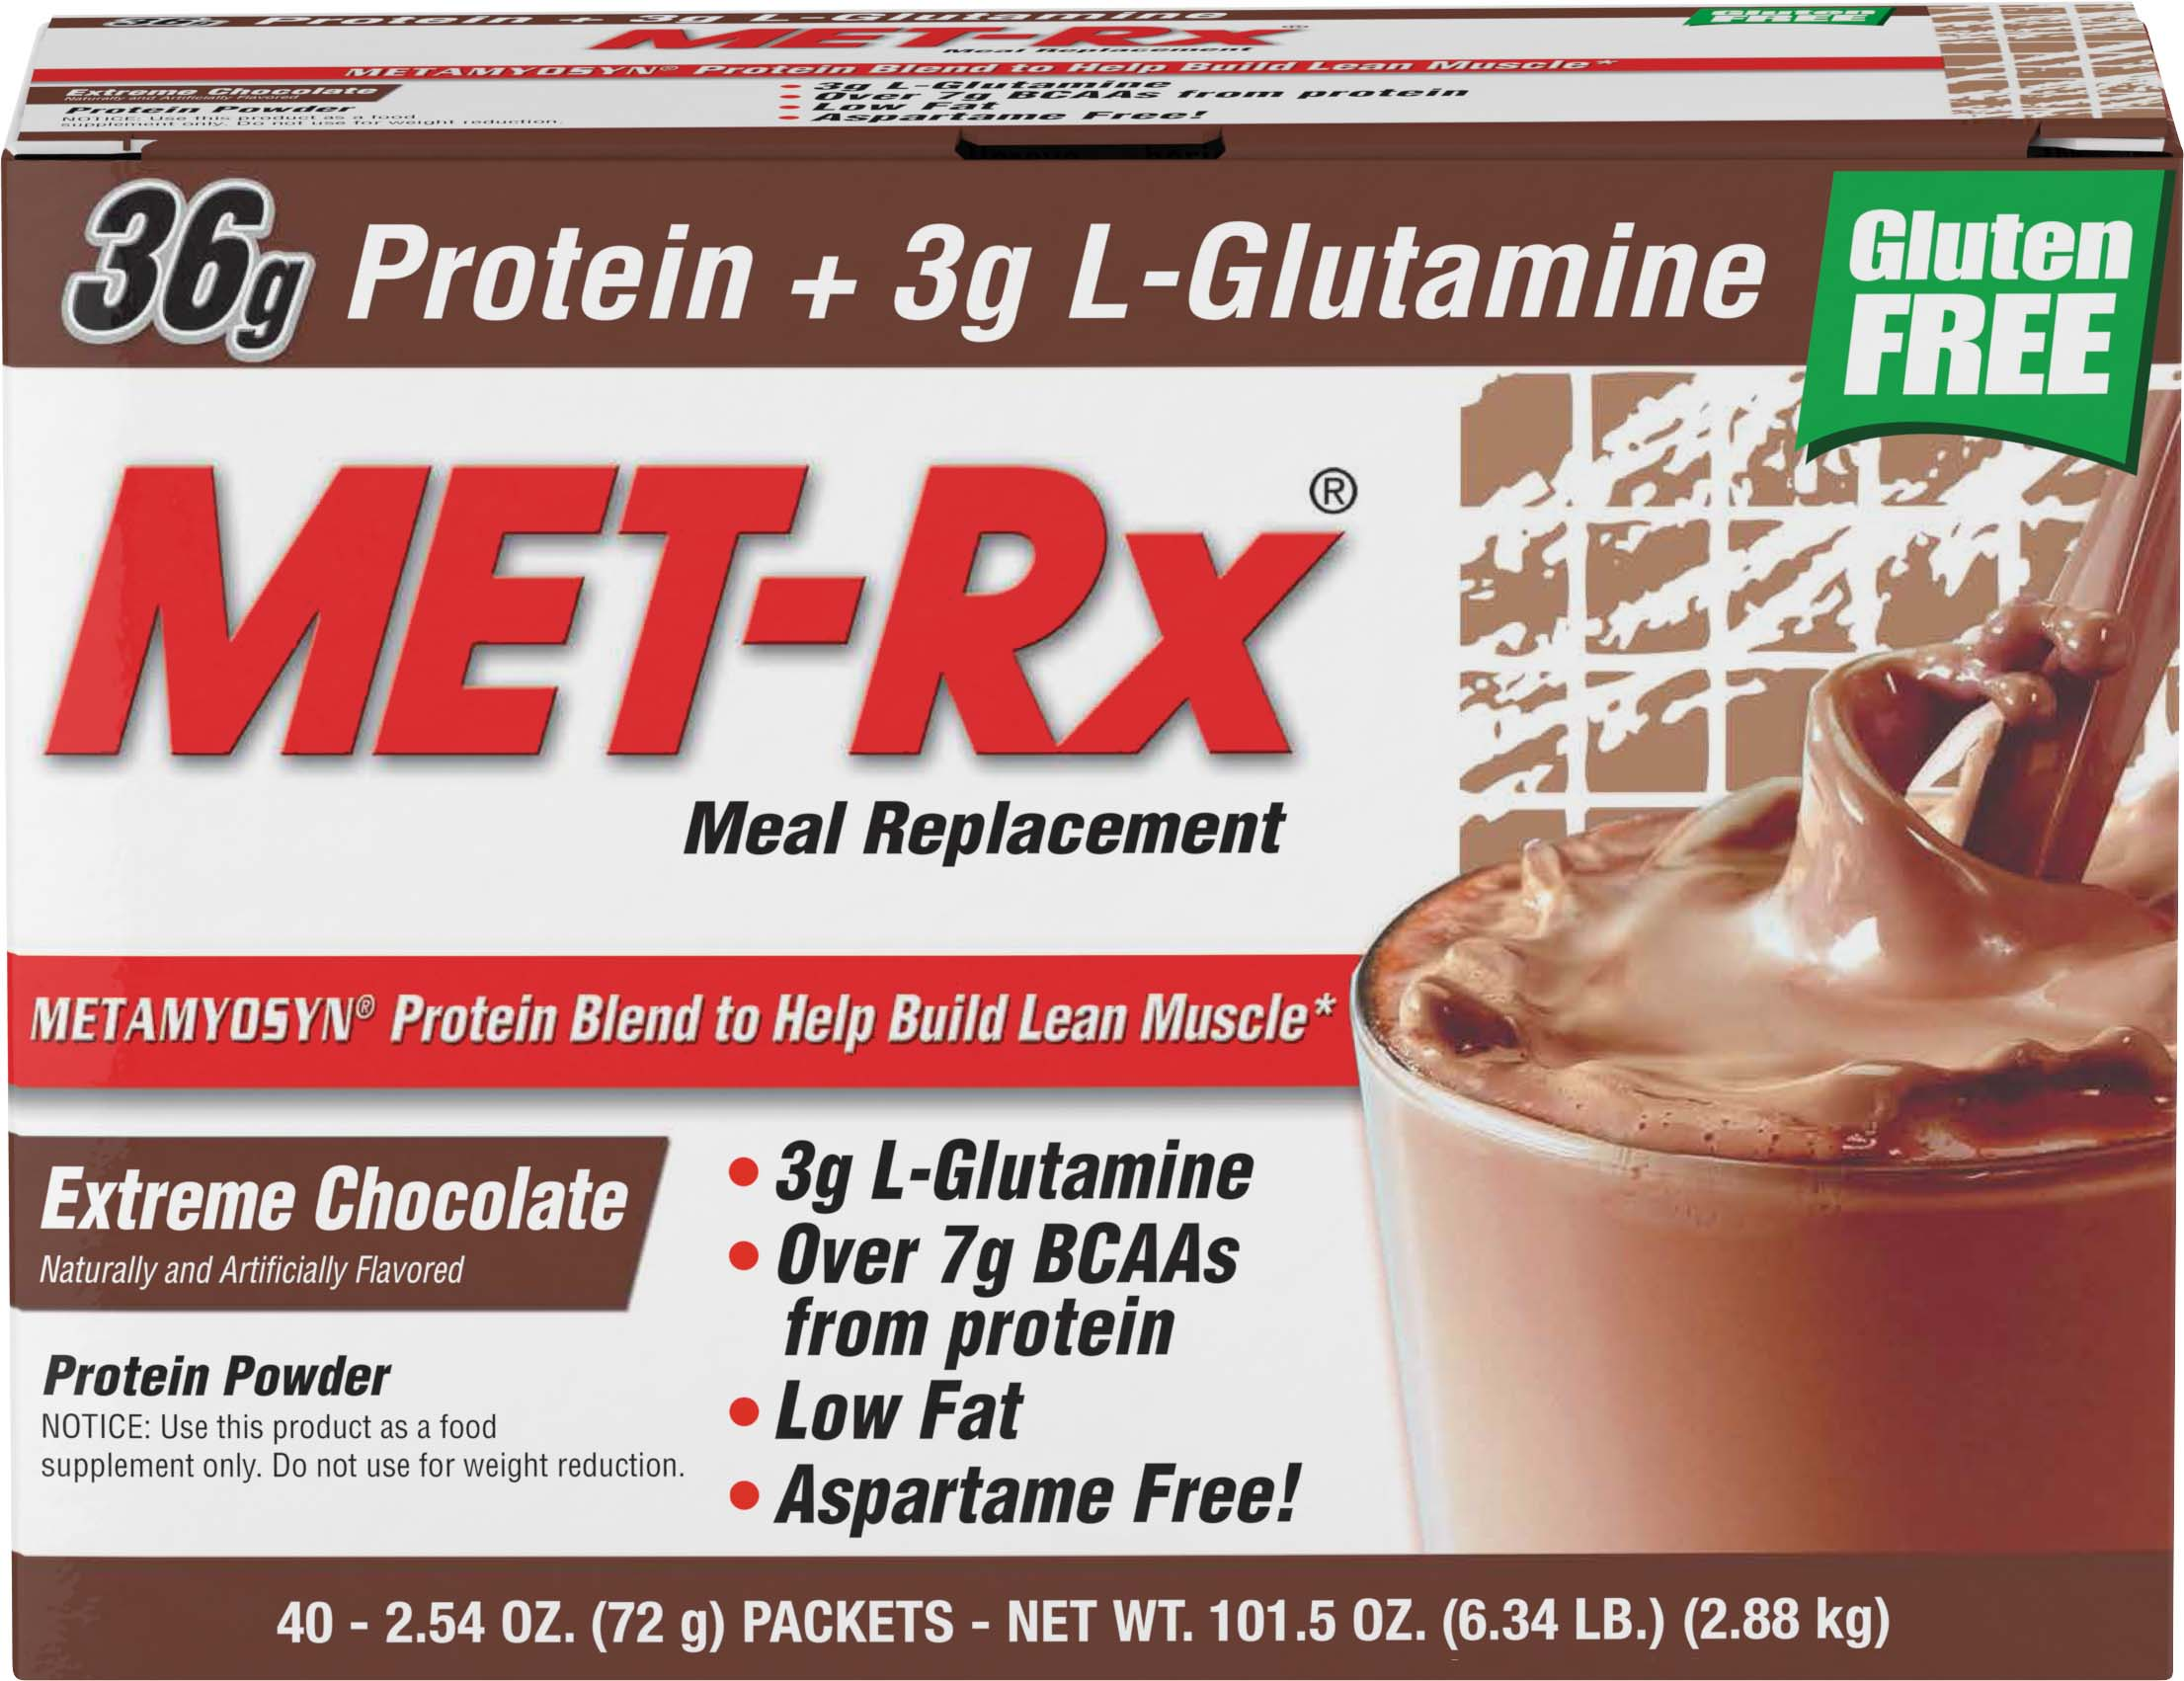 Met Rx Original Meal Replacement Protein Powder Extreme Chocolate 36g Protein 40 Packets Walmart Com Walmart Com